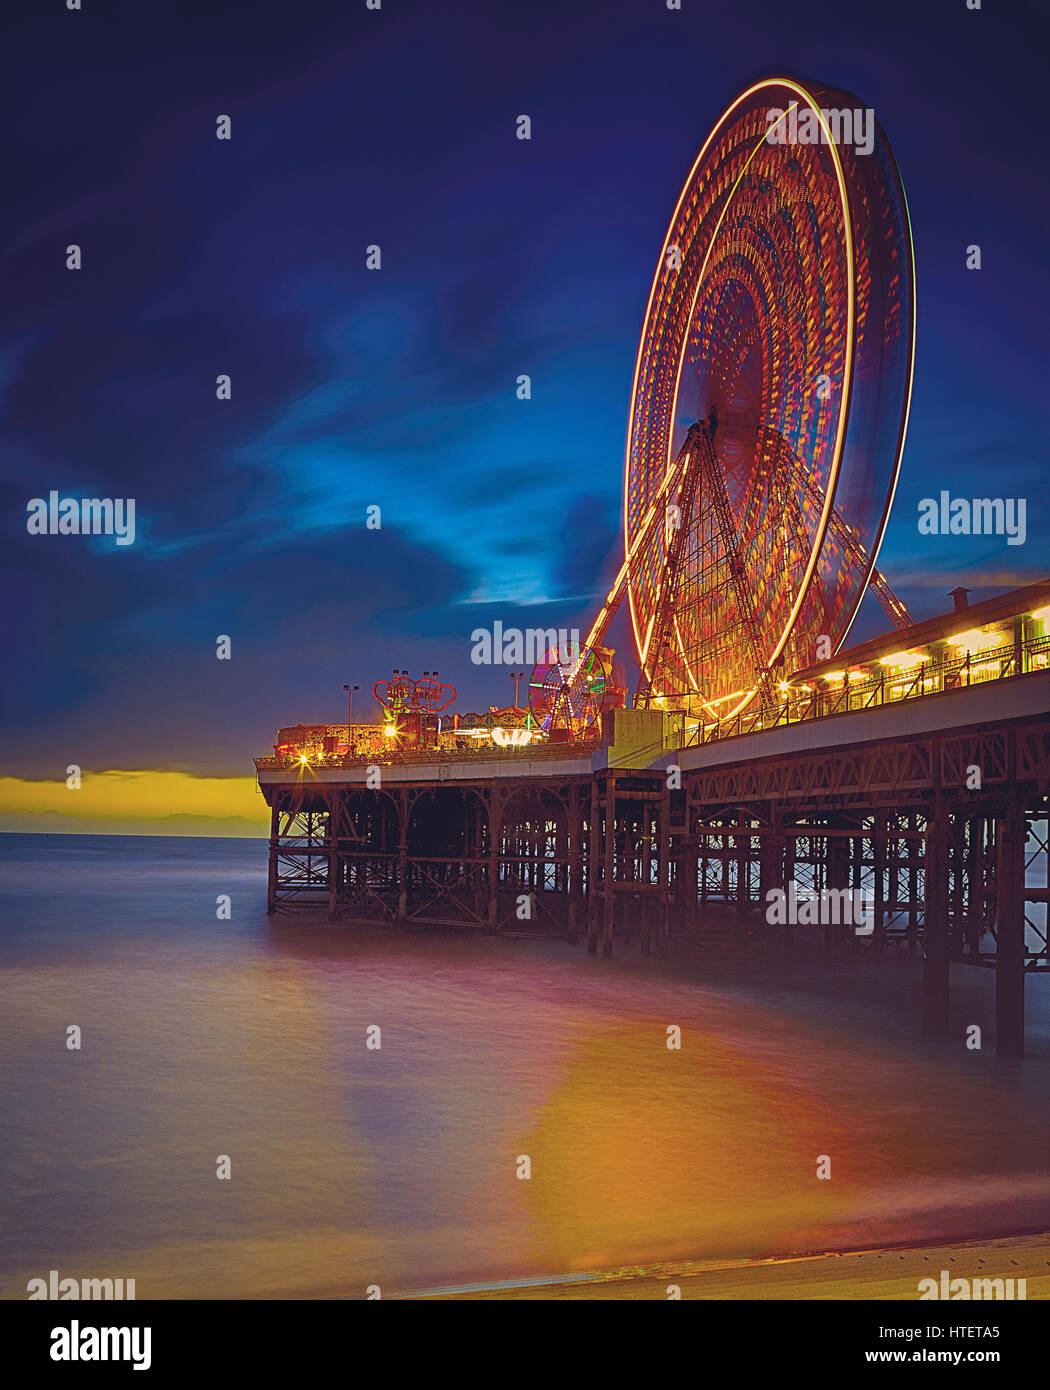 Long Exposure Night Image of Ferris Wheel on Pier at Blackpool - Stock Image